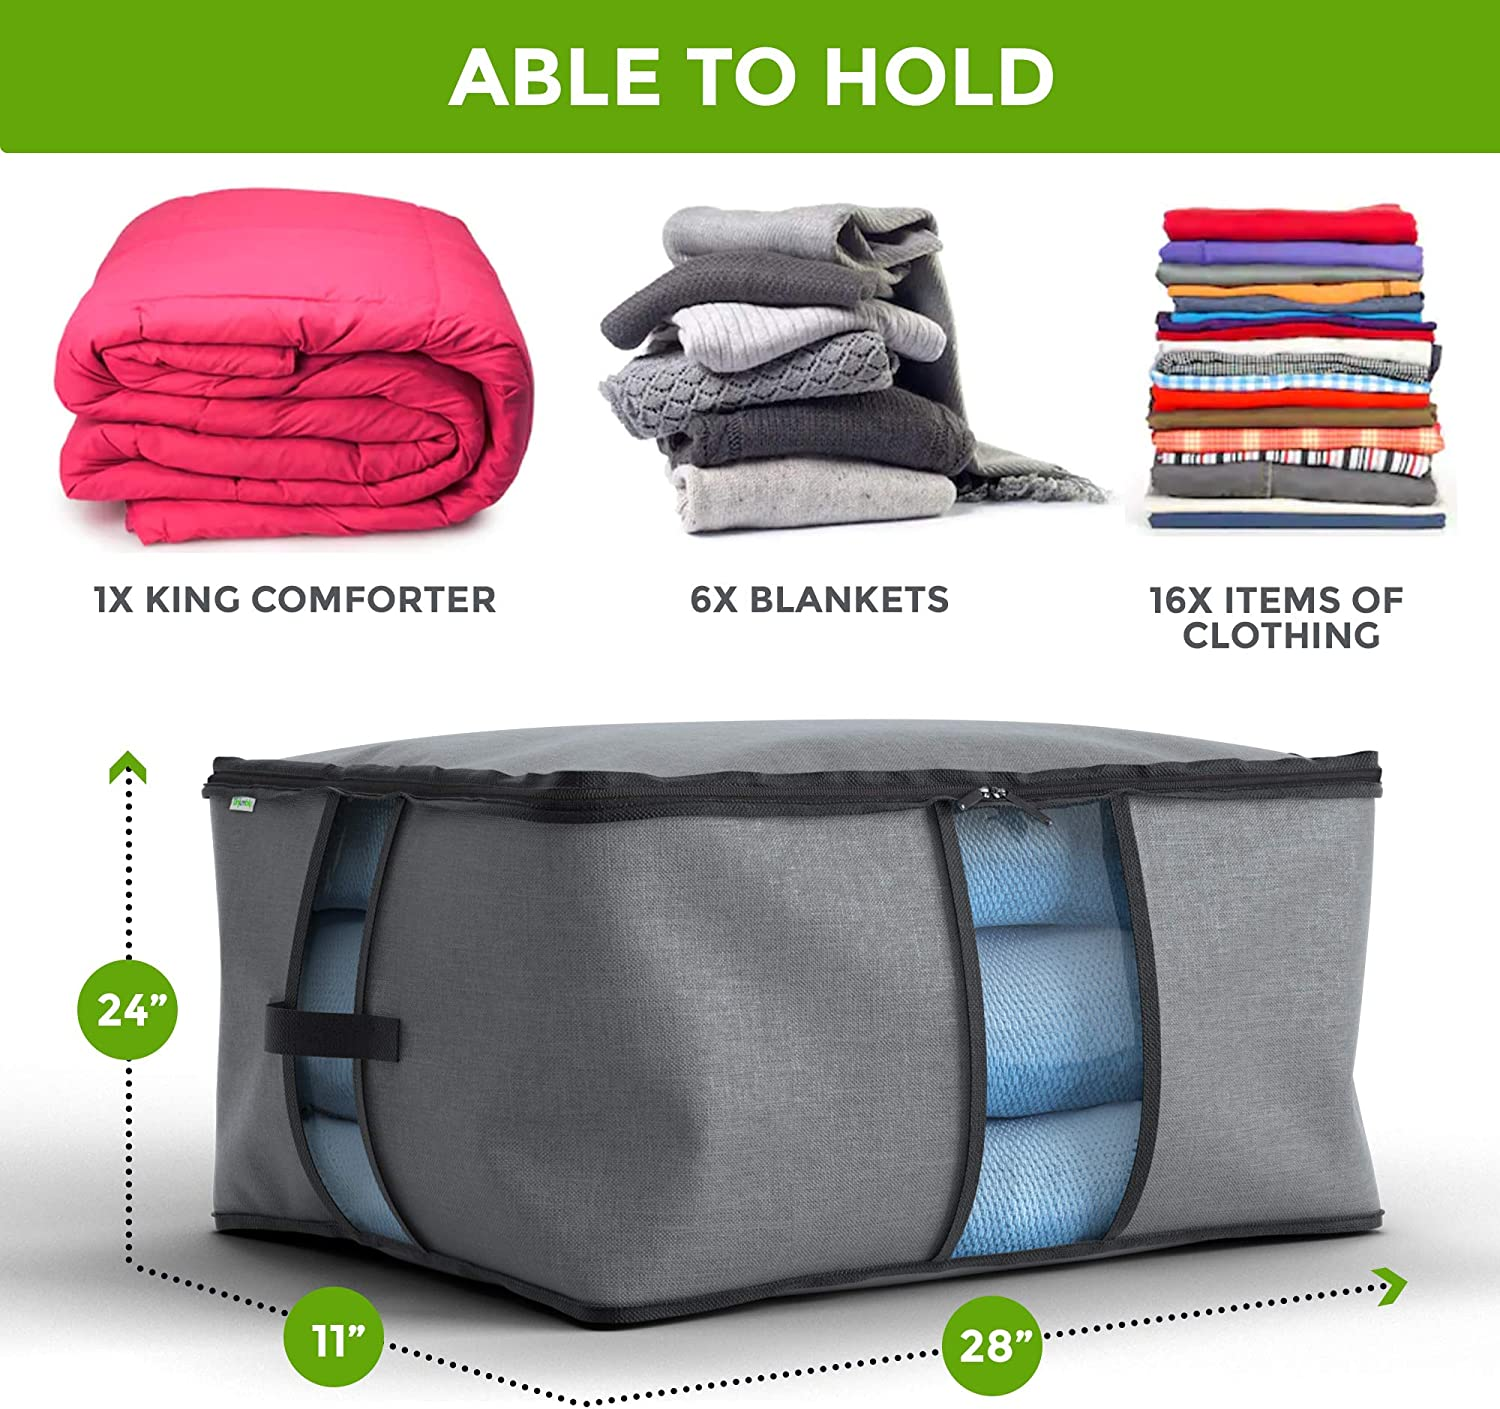 Unjumbly Storage Bag for Comforters and Blankets Bedding and Comforters with a Strong Durable Zipper and Clear Windows Gray Underbed Storage Under Bed Storage to Safely Store and Protect Clothes